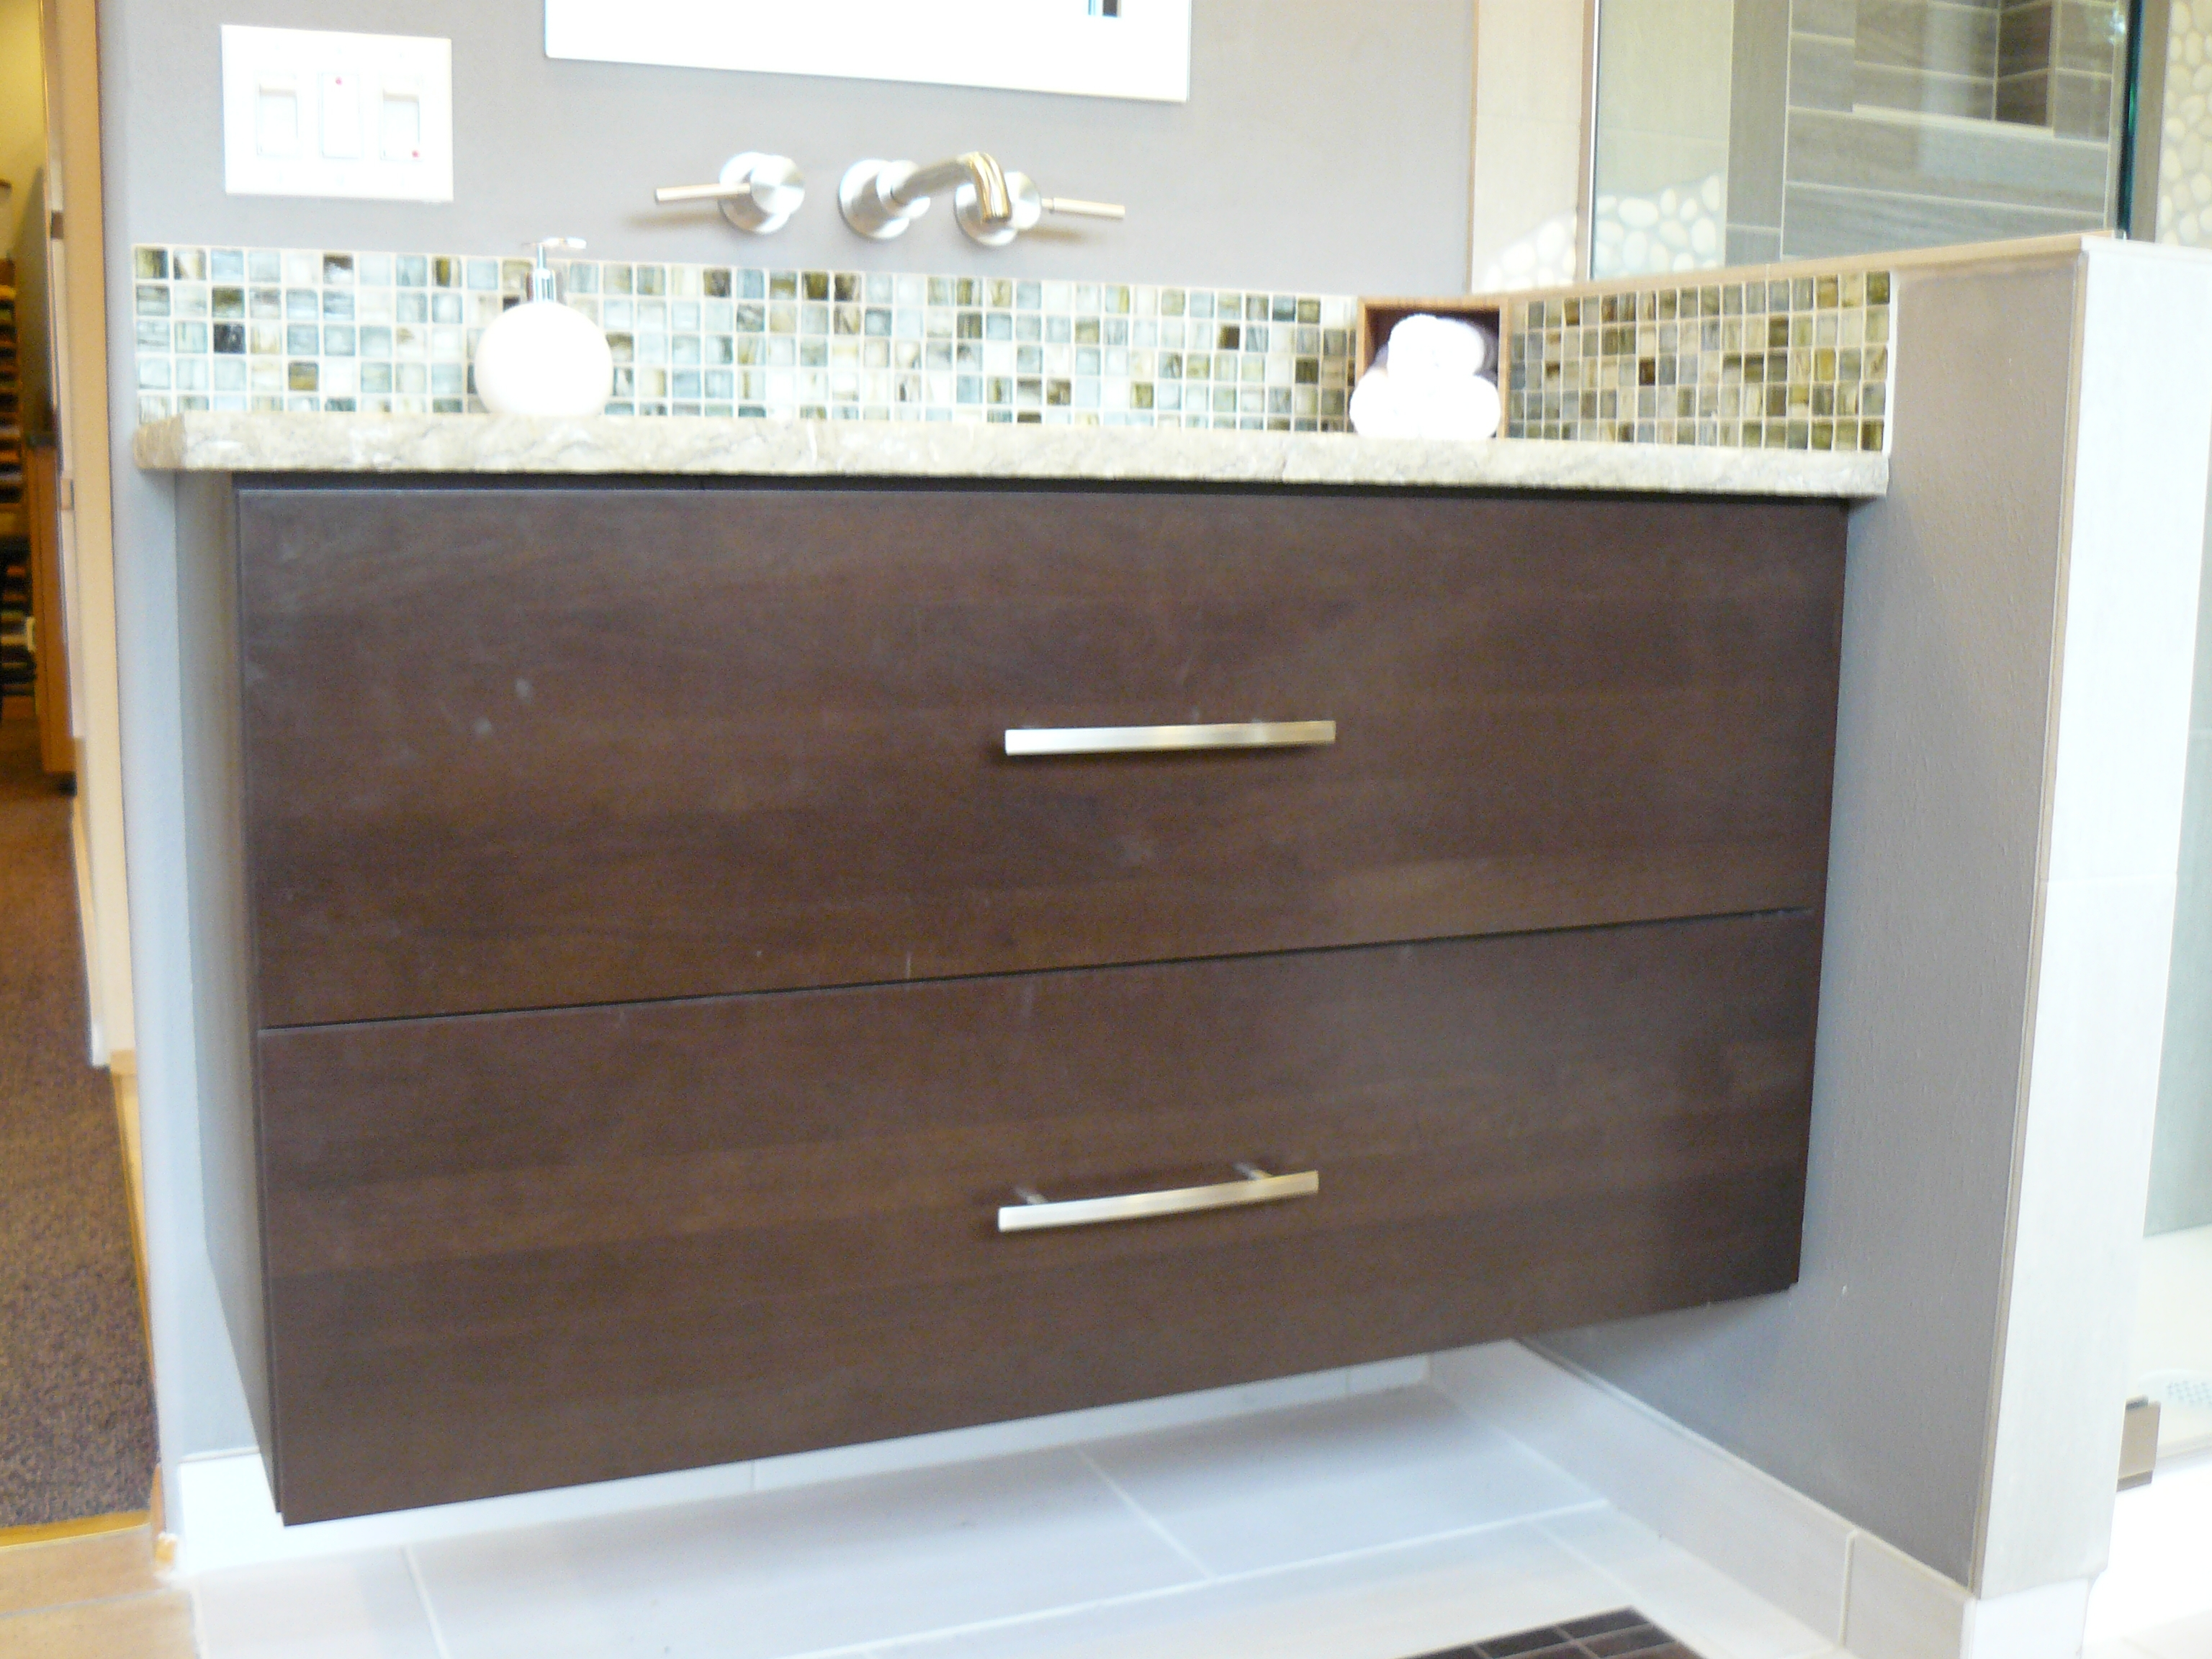 60 Inch Single Sink Bathroom Vanity Without Top3072 X 2304